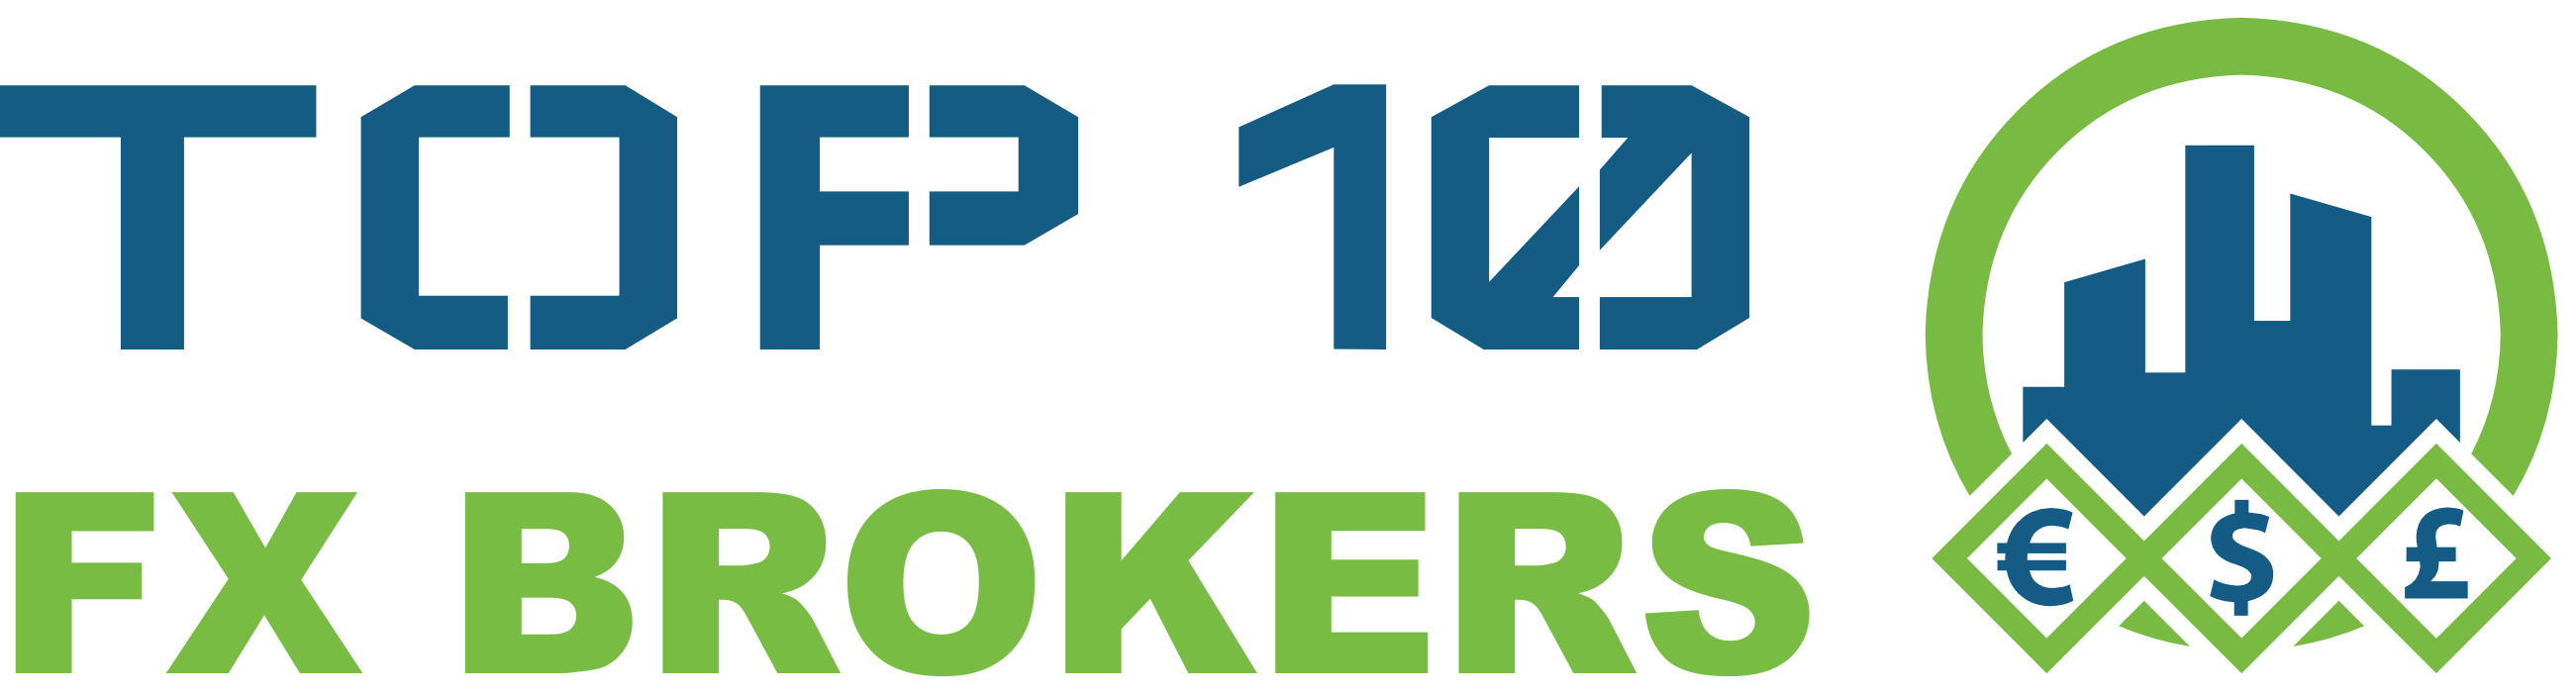 top10fxbrokers